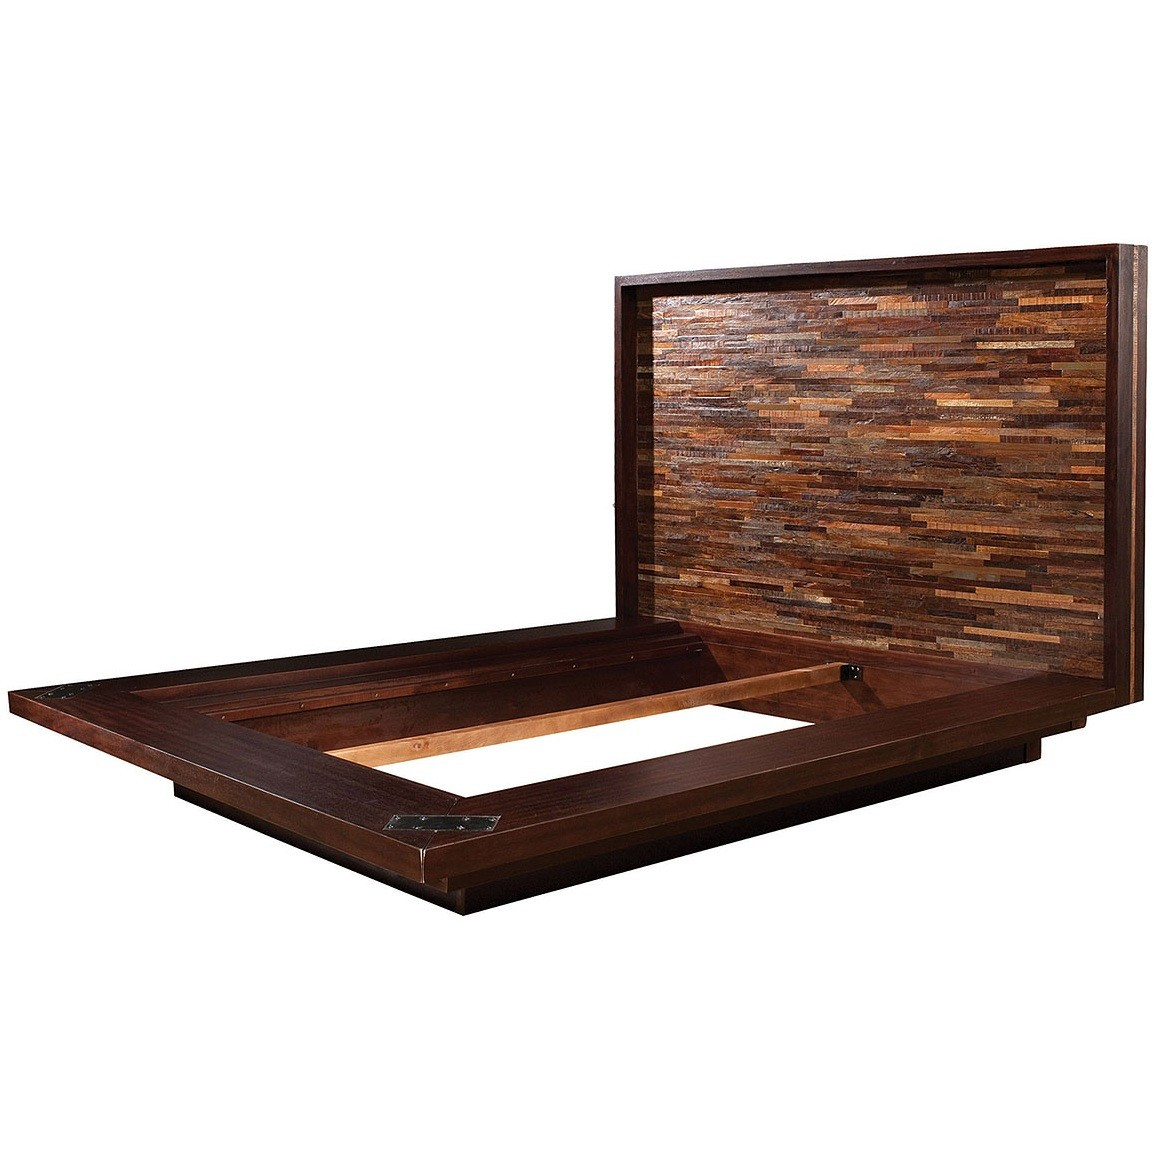 _bed_frame_solid_wood_platform_bed_frame_reclaimed_wood_platform_bed ...